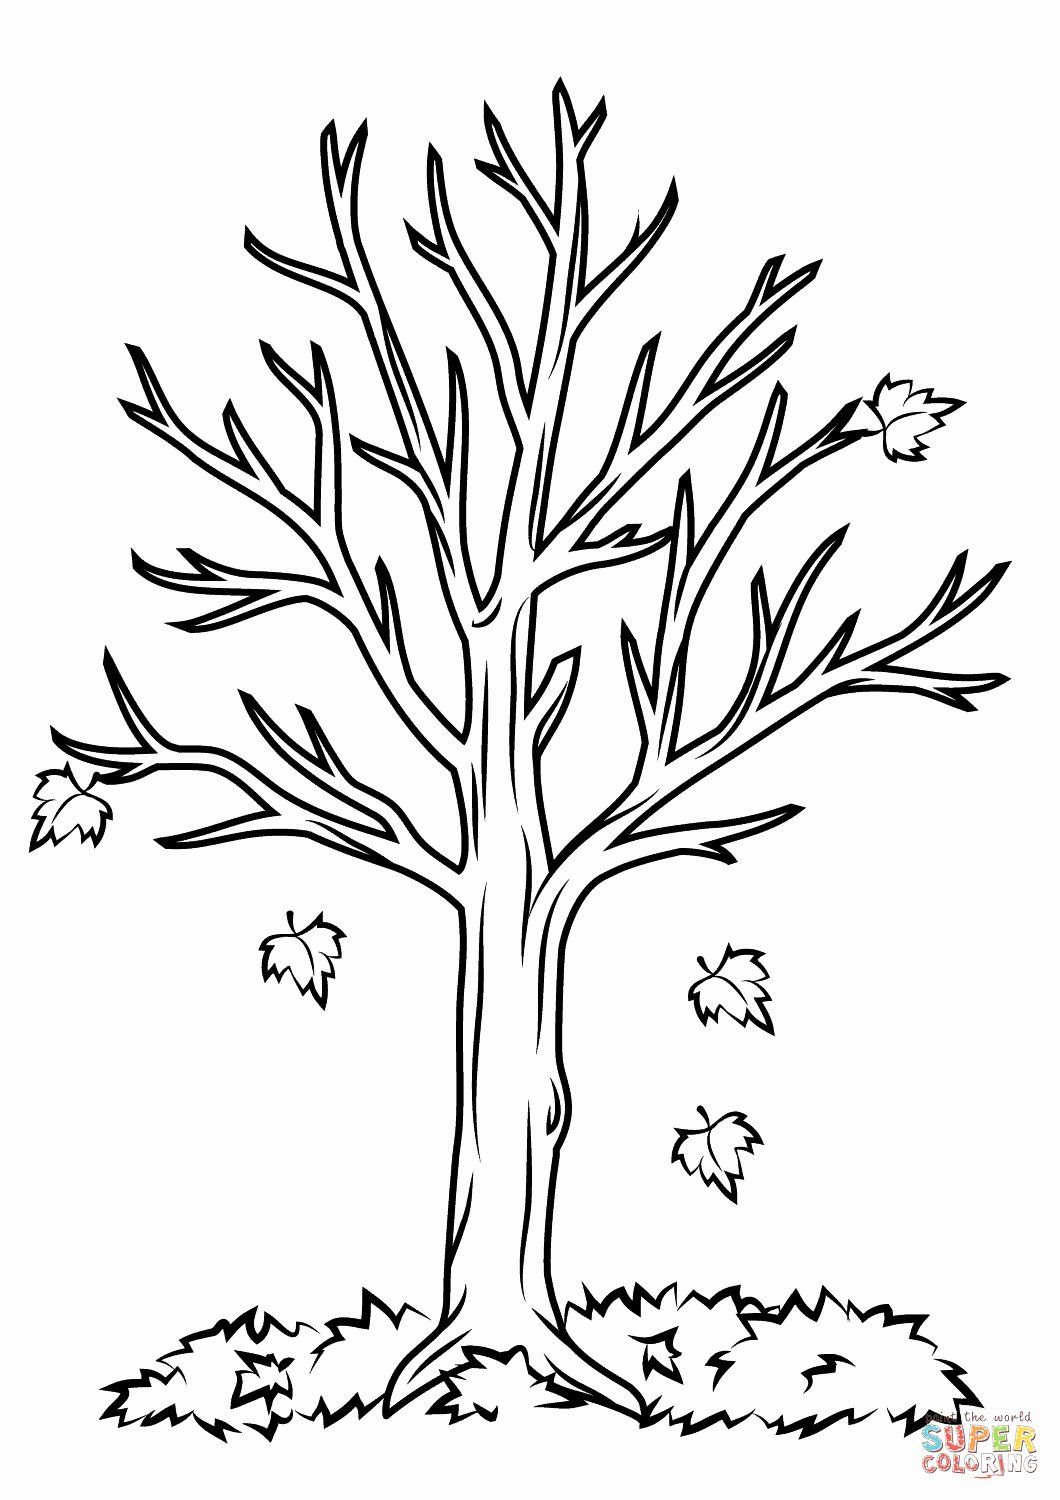 Tree Without Leaves Coloring Page Elegant Coloring Books Fall Leavesoloring Pages Ideas Autumn Fall Coloring Sheets Leaf Coloring Page Tree Coloring Page